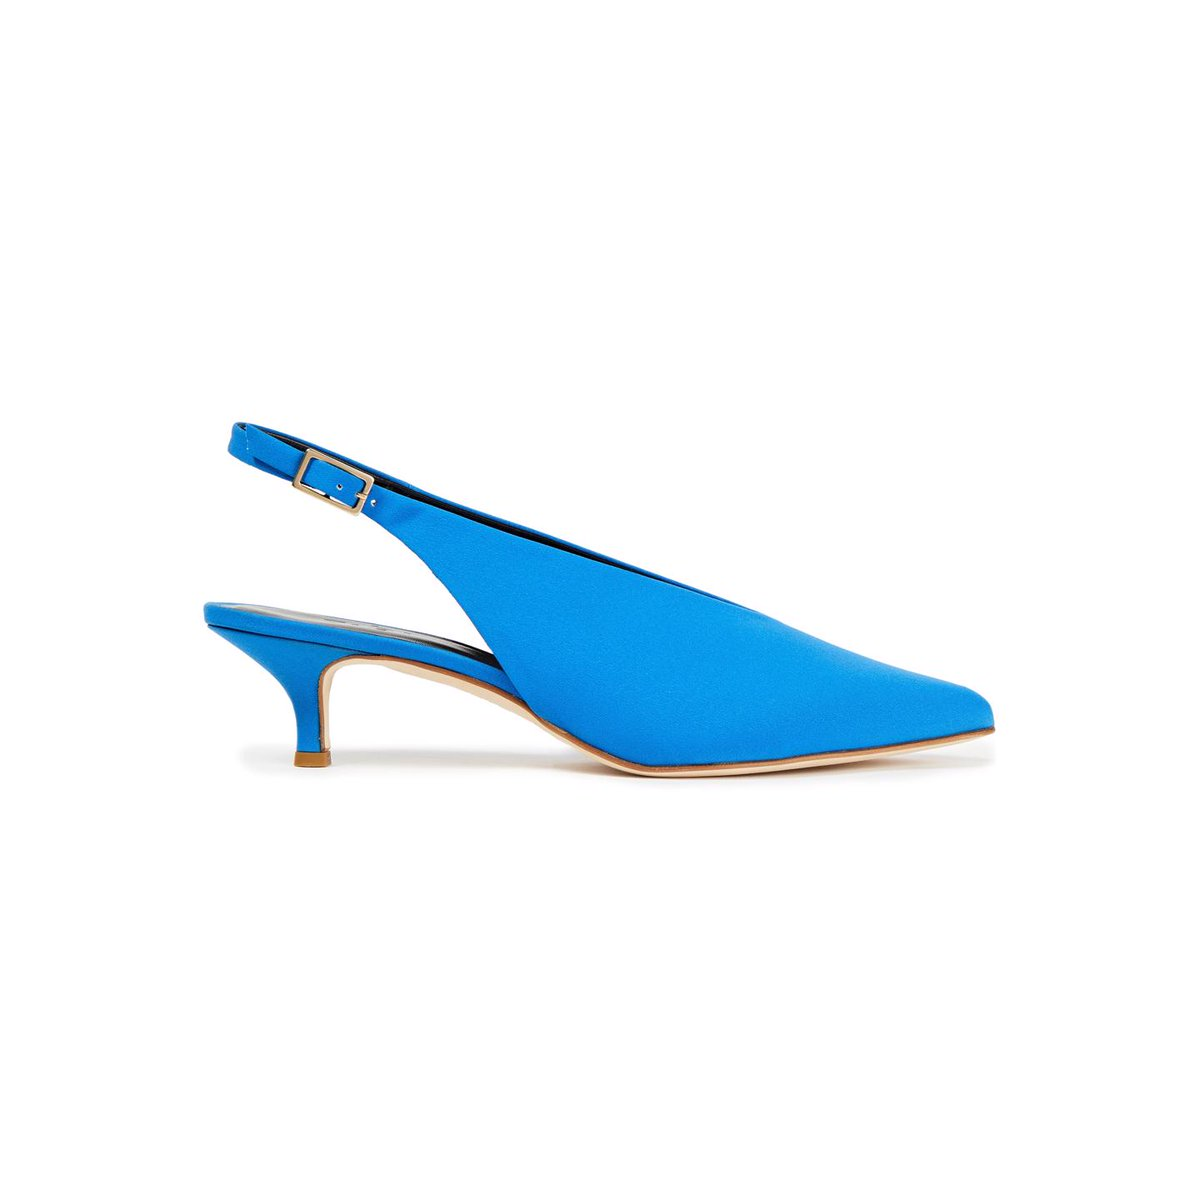 TIBI - Crepe slingback pumps - 59% off, was $748, now $306 https://t.co/Lo76lgfGns #tibi #shoes